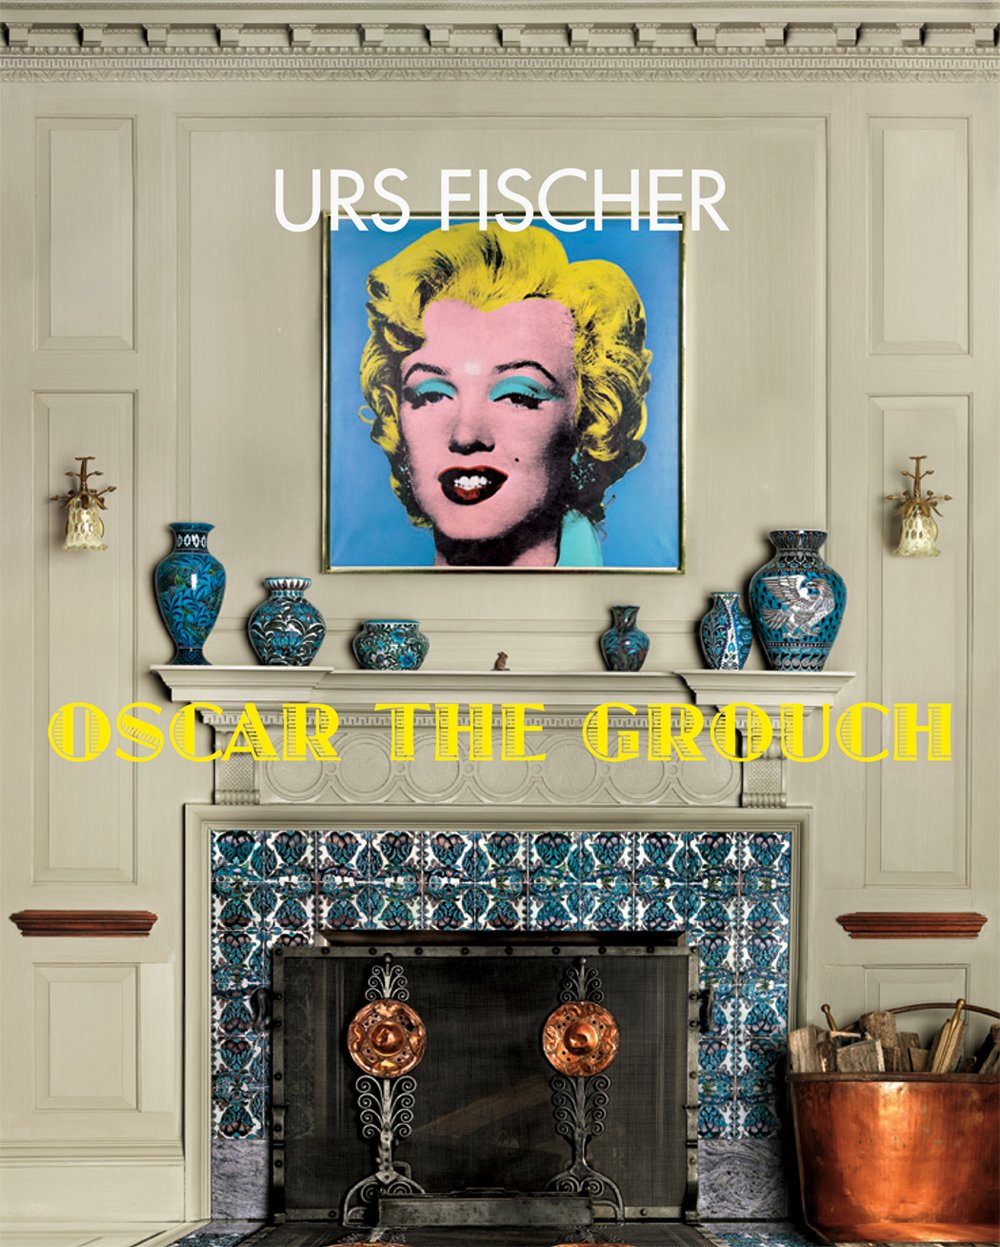 Urs Fischer Oscar the Grouch - The Brant Foundation Shop